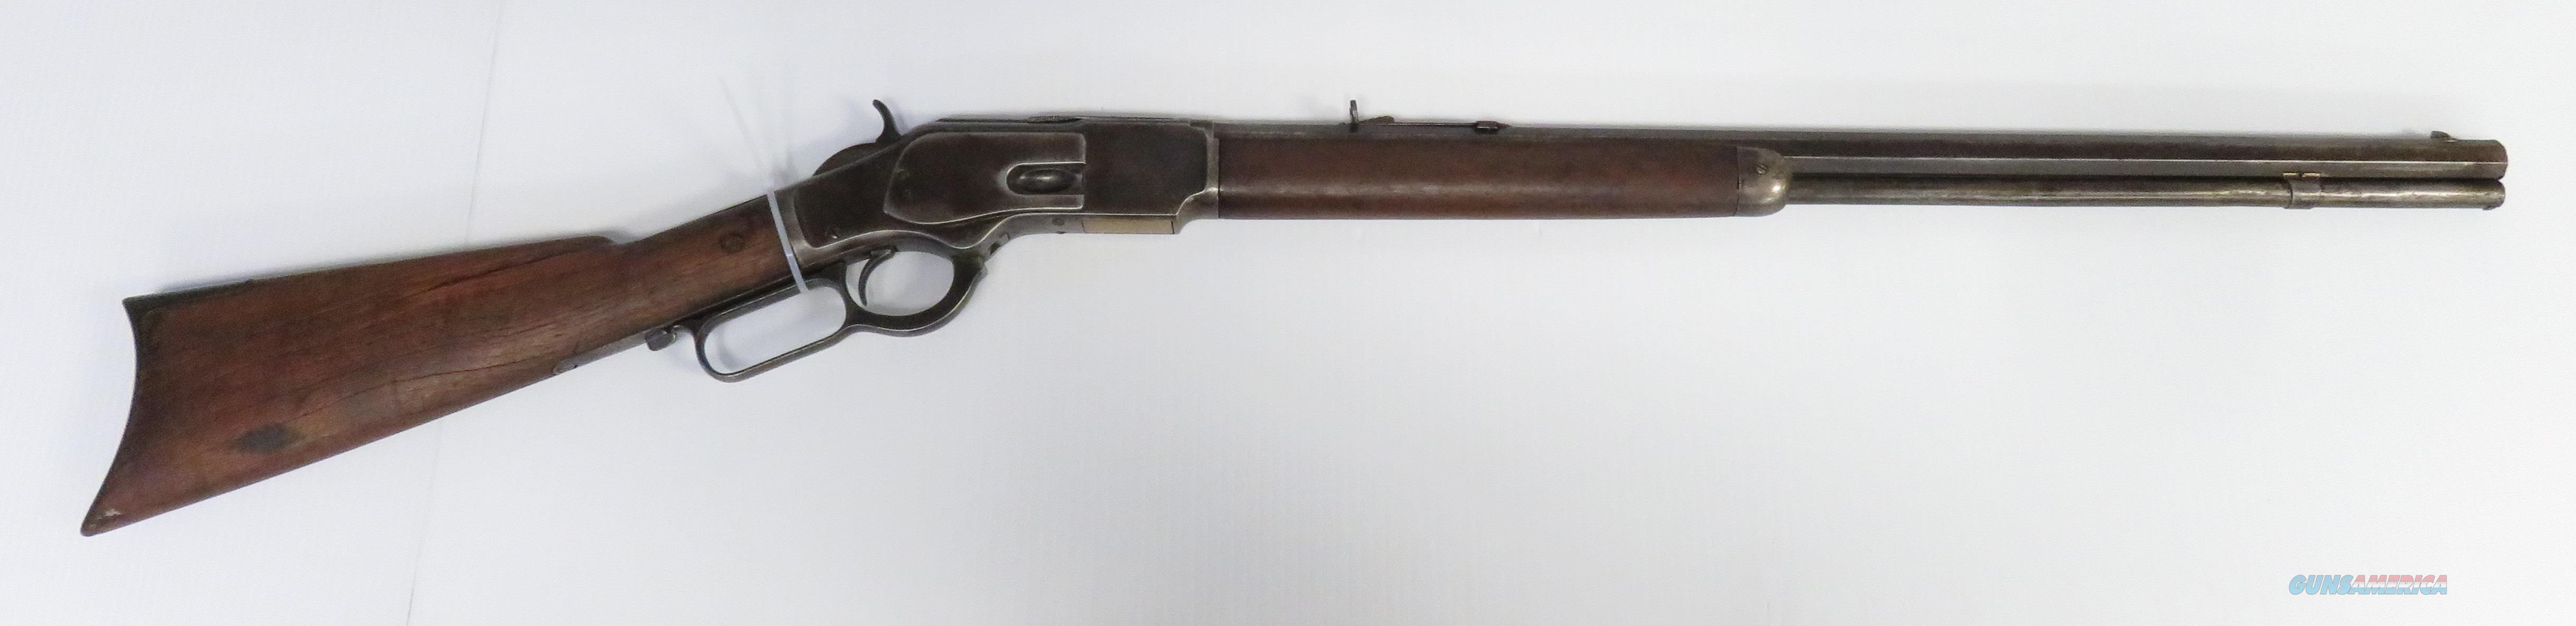 """Winchester 1873 .32-20 (32 WCF) Lever-Action Rifle 24"""" Octagonal Barrel  Guns > Rifles > Winchester Rifles - Pre-1899 Lever"""